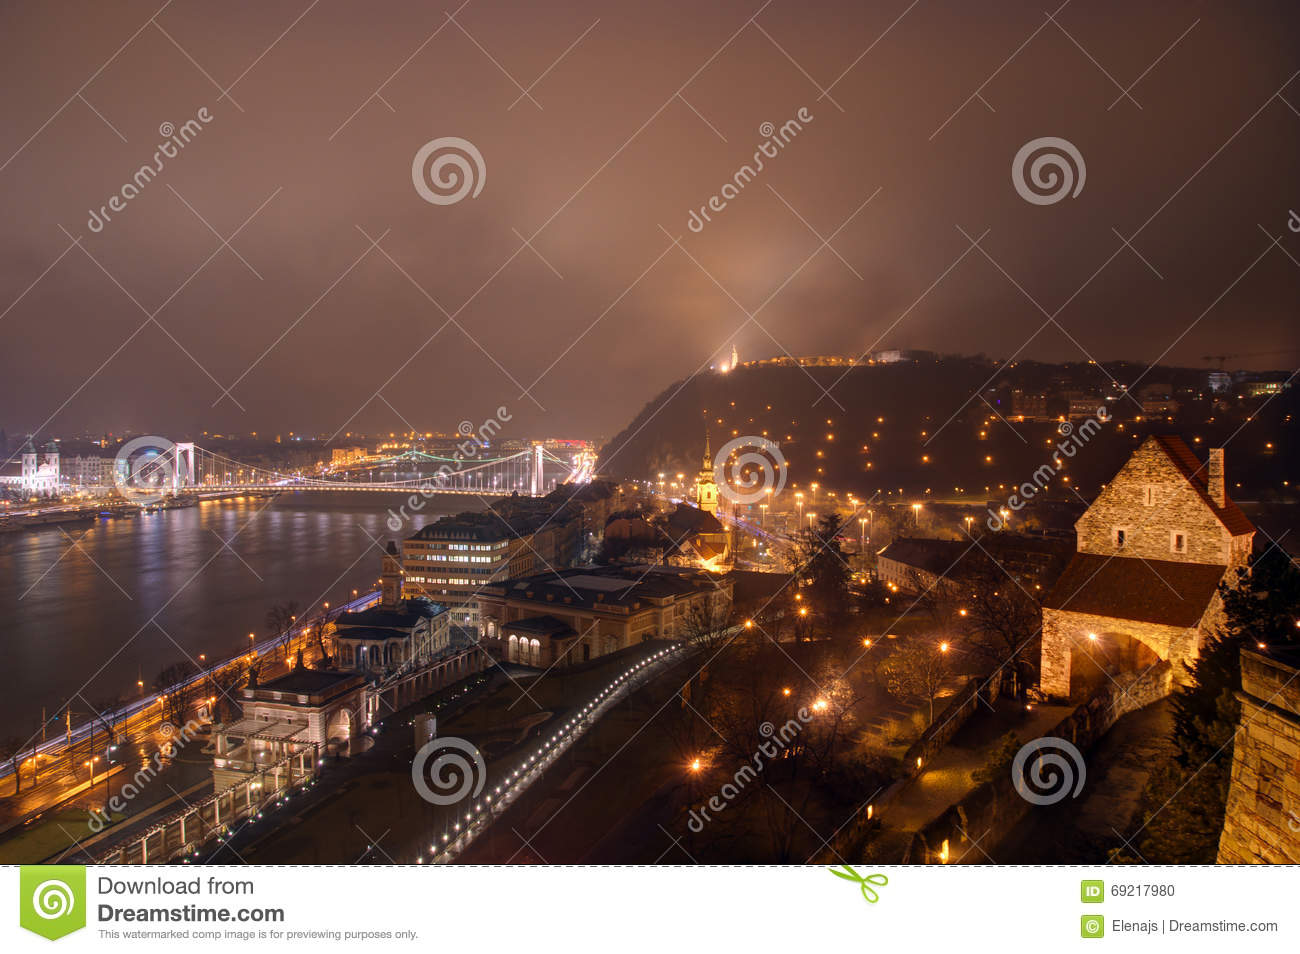 Hungary, Budapest, Elisabeth Bridge, Castle Garden , Varkert casino, Citadella on the hill and Gate in the Castle Buda by night